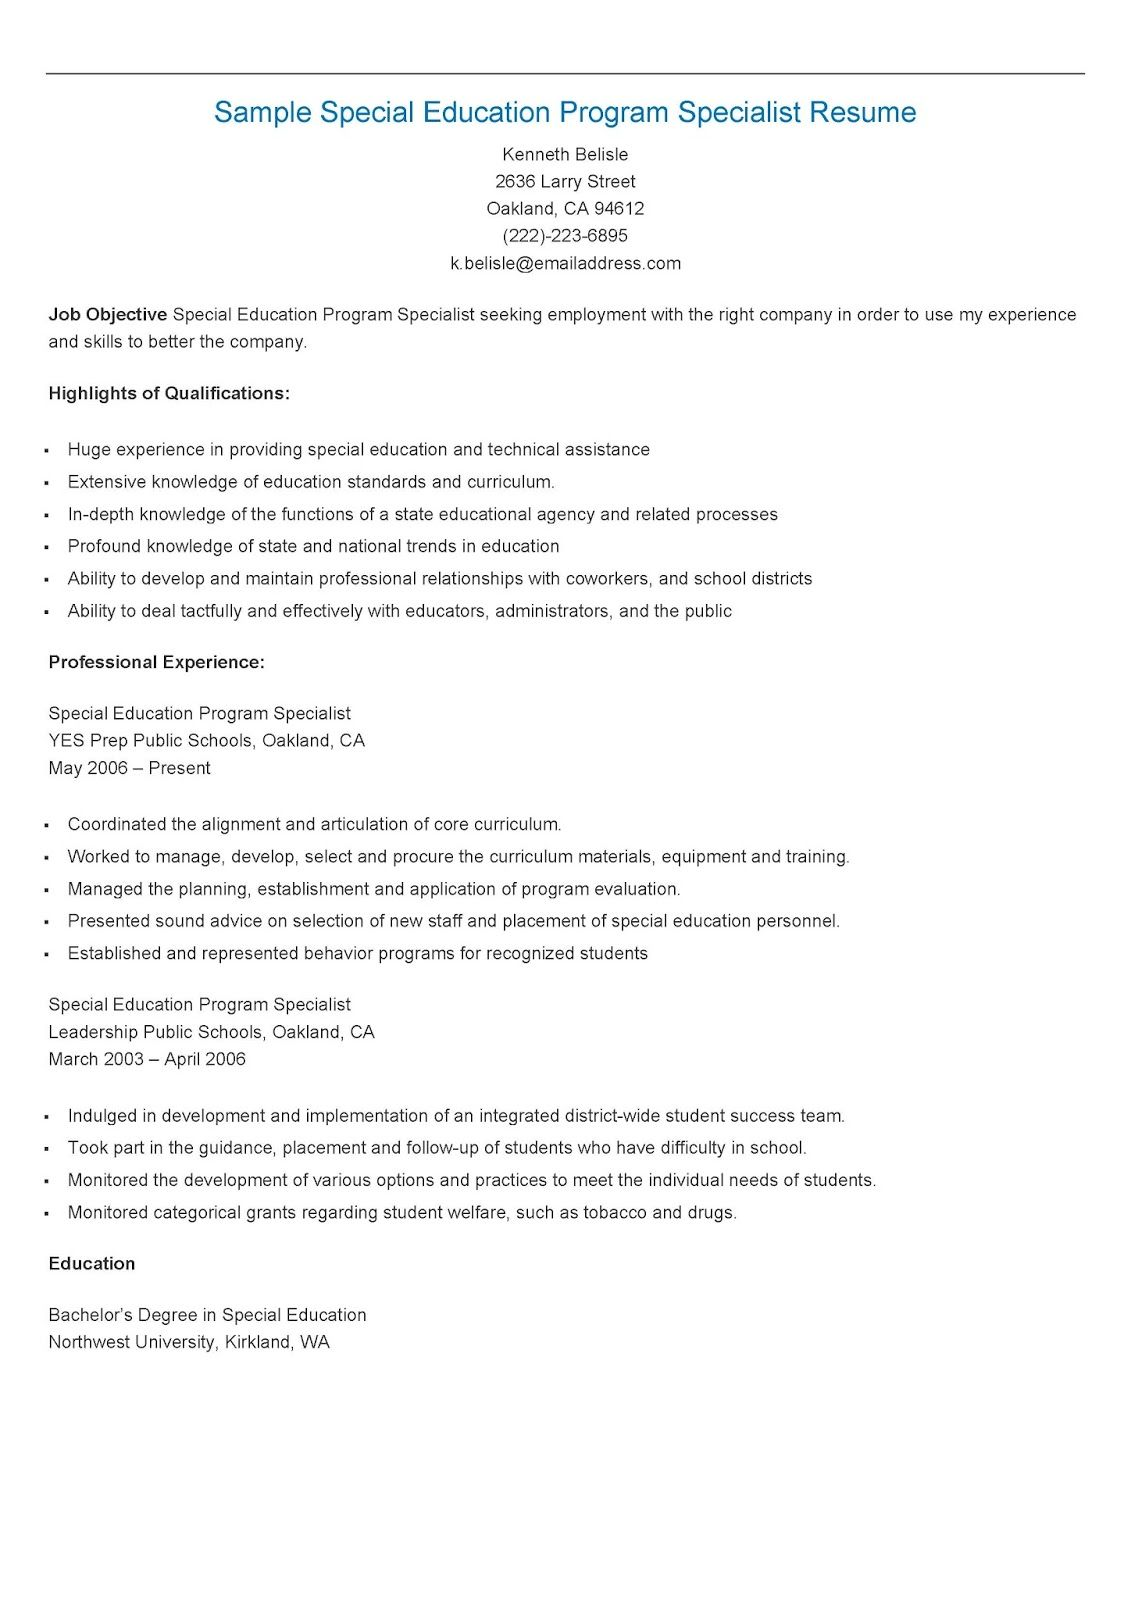 sample special education program specialist resume resame sample special education program specialist resume